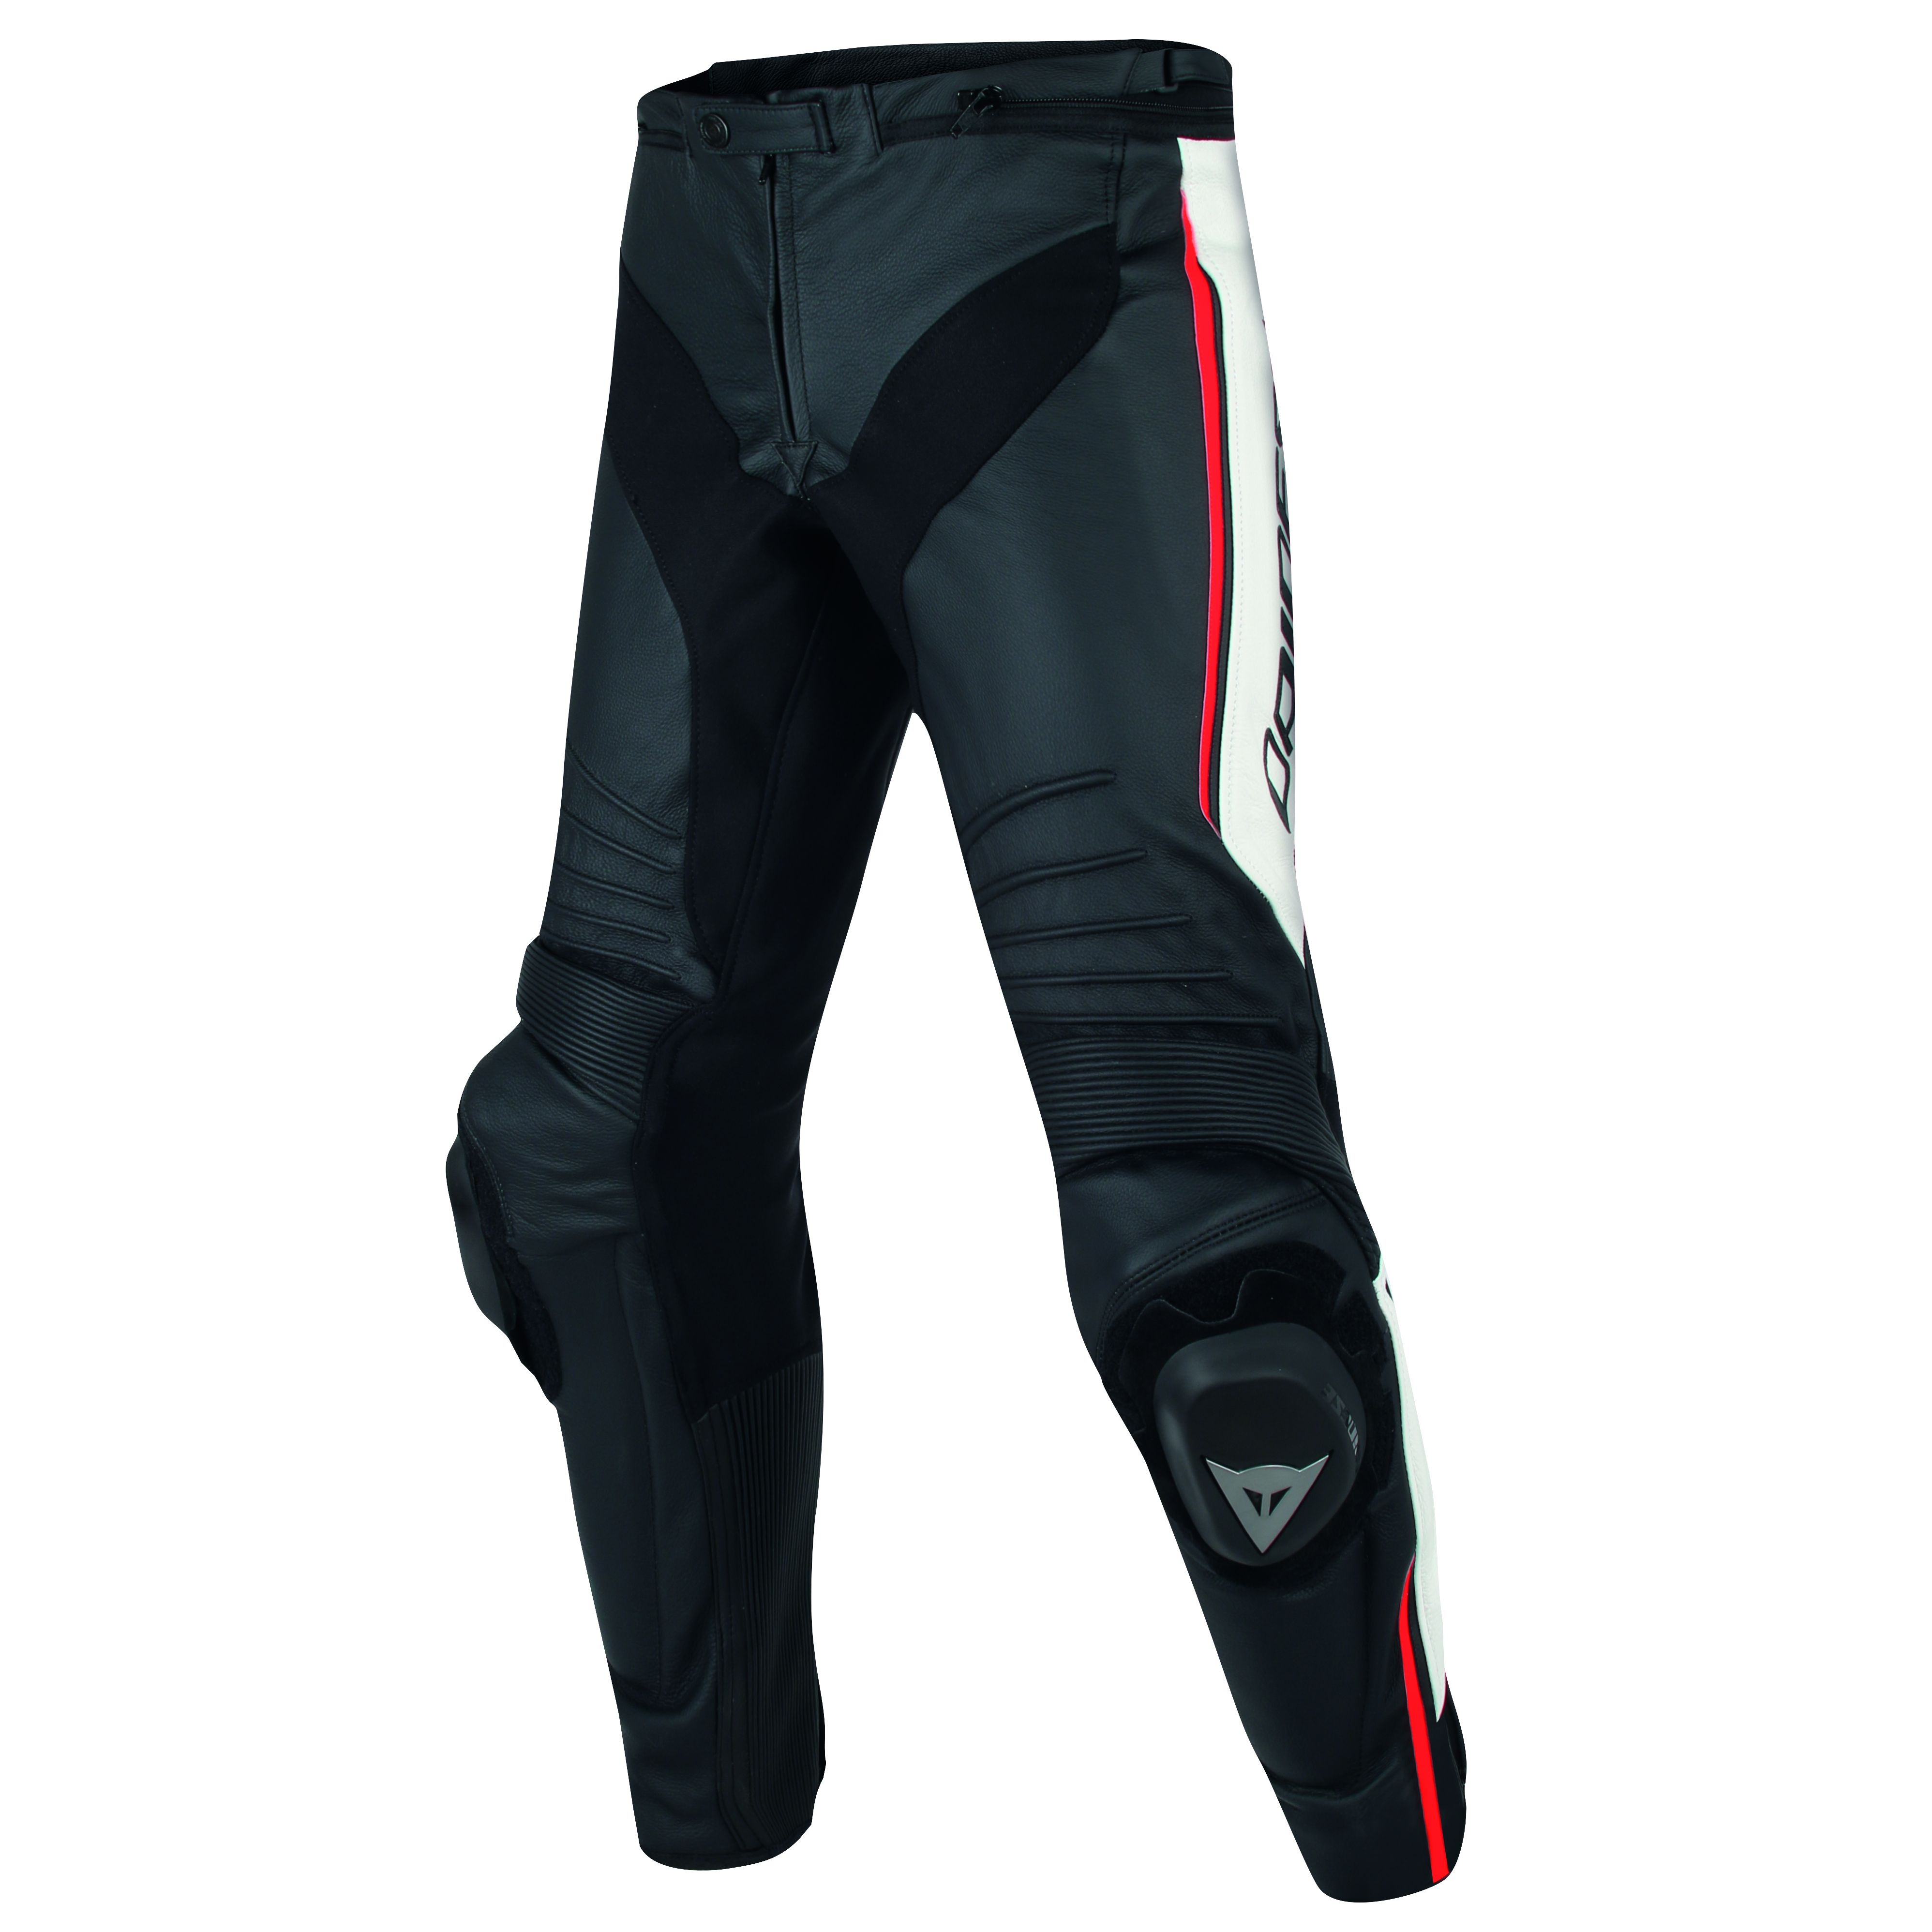 pantalon dainese misano leather black white red pantalon et combinaison. Black Bedroom Furniture Sets. Home Design Ideas